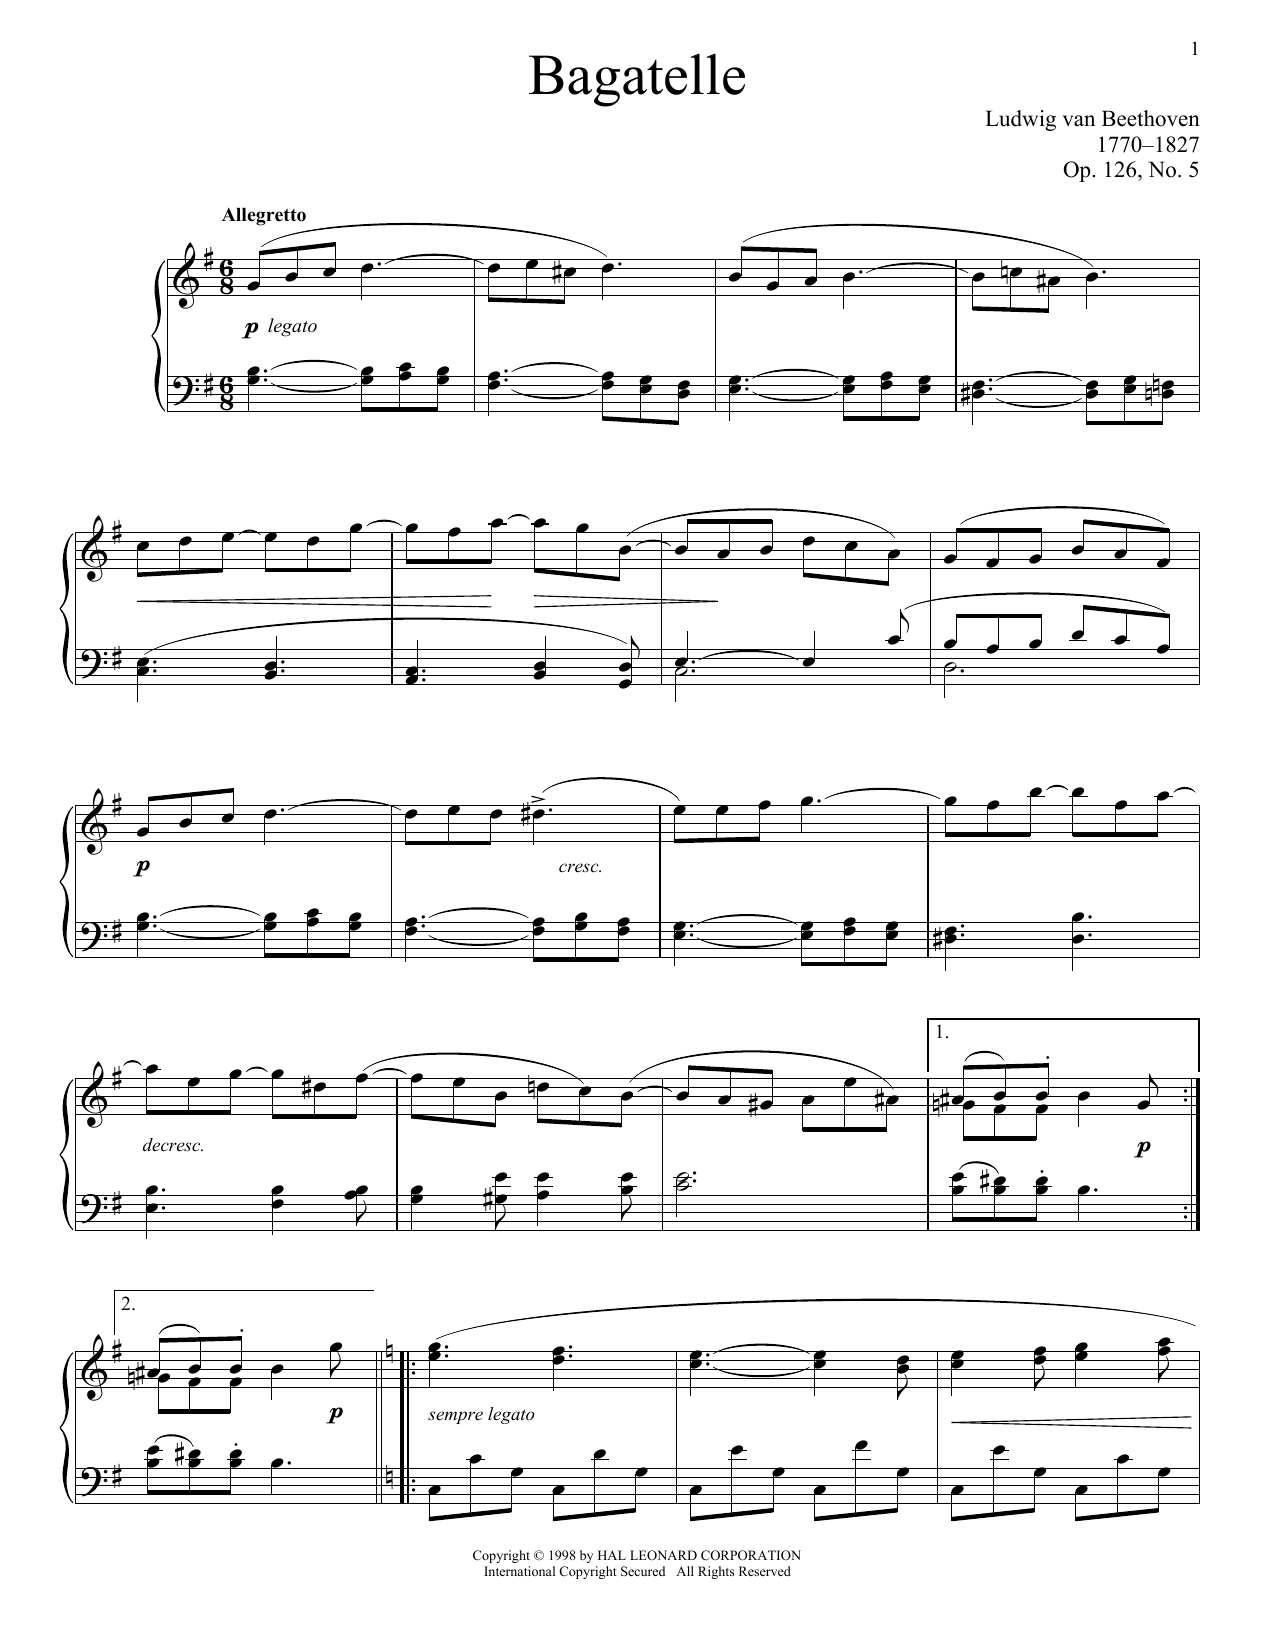 Ludwig van Beethoven Bagatelle in G, Op. 126, No. 5 sheet music notes and chords. Download Printable PDF.